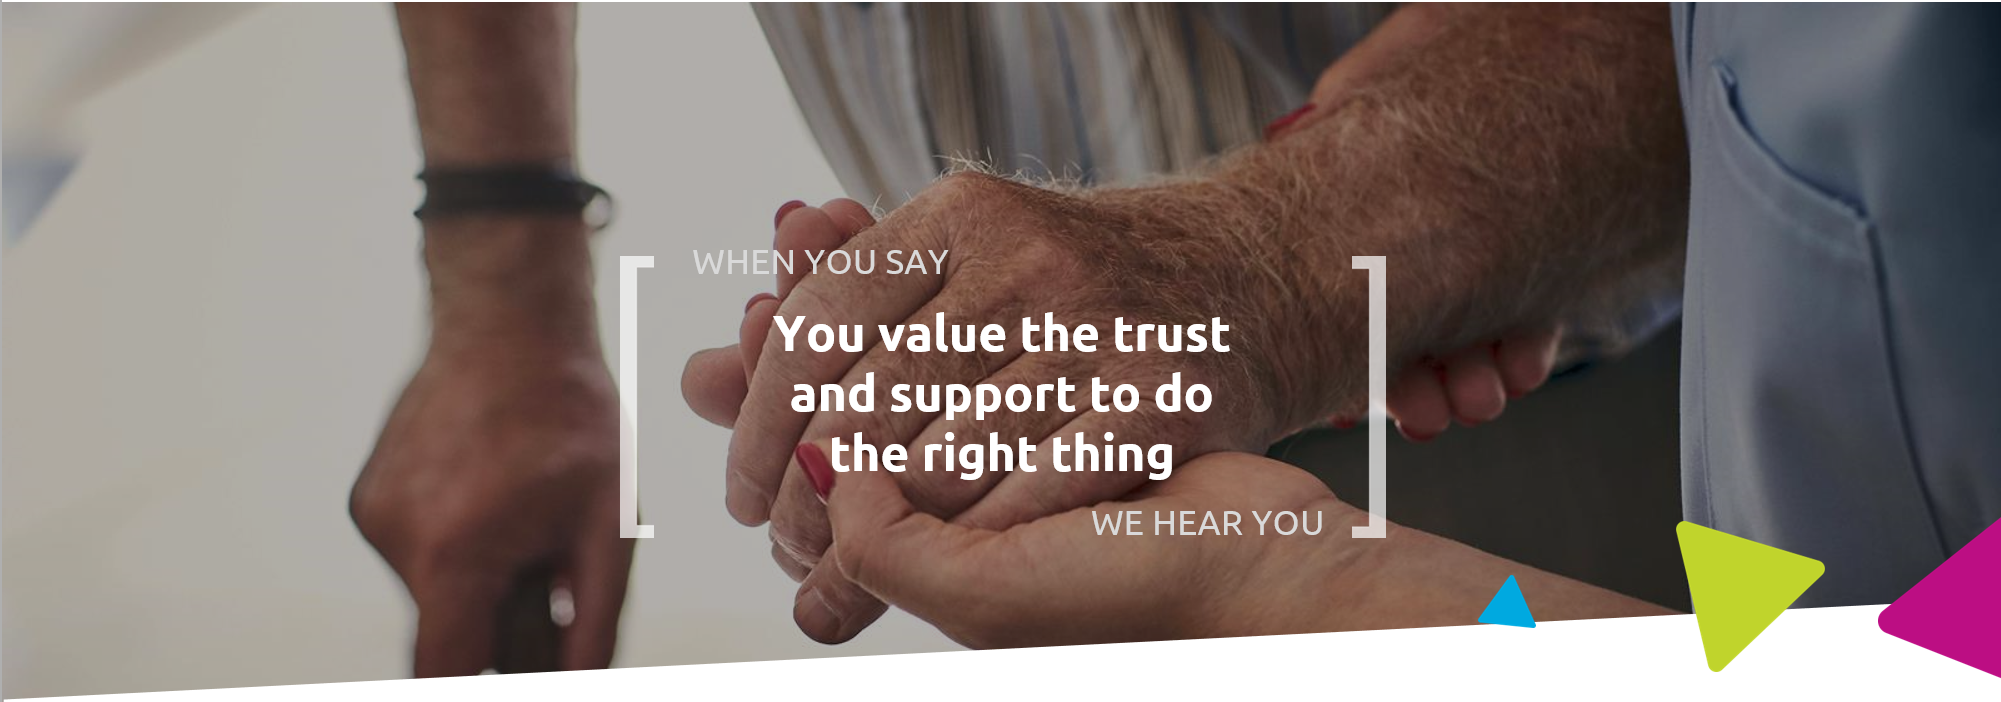 When you say you value the trust and support to do the right thing, we hear you